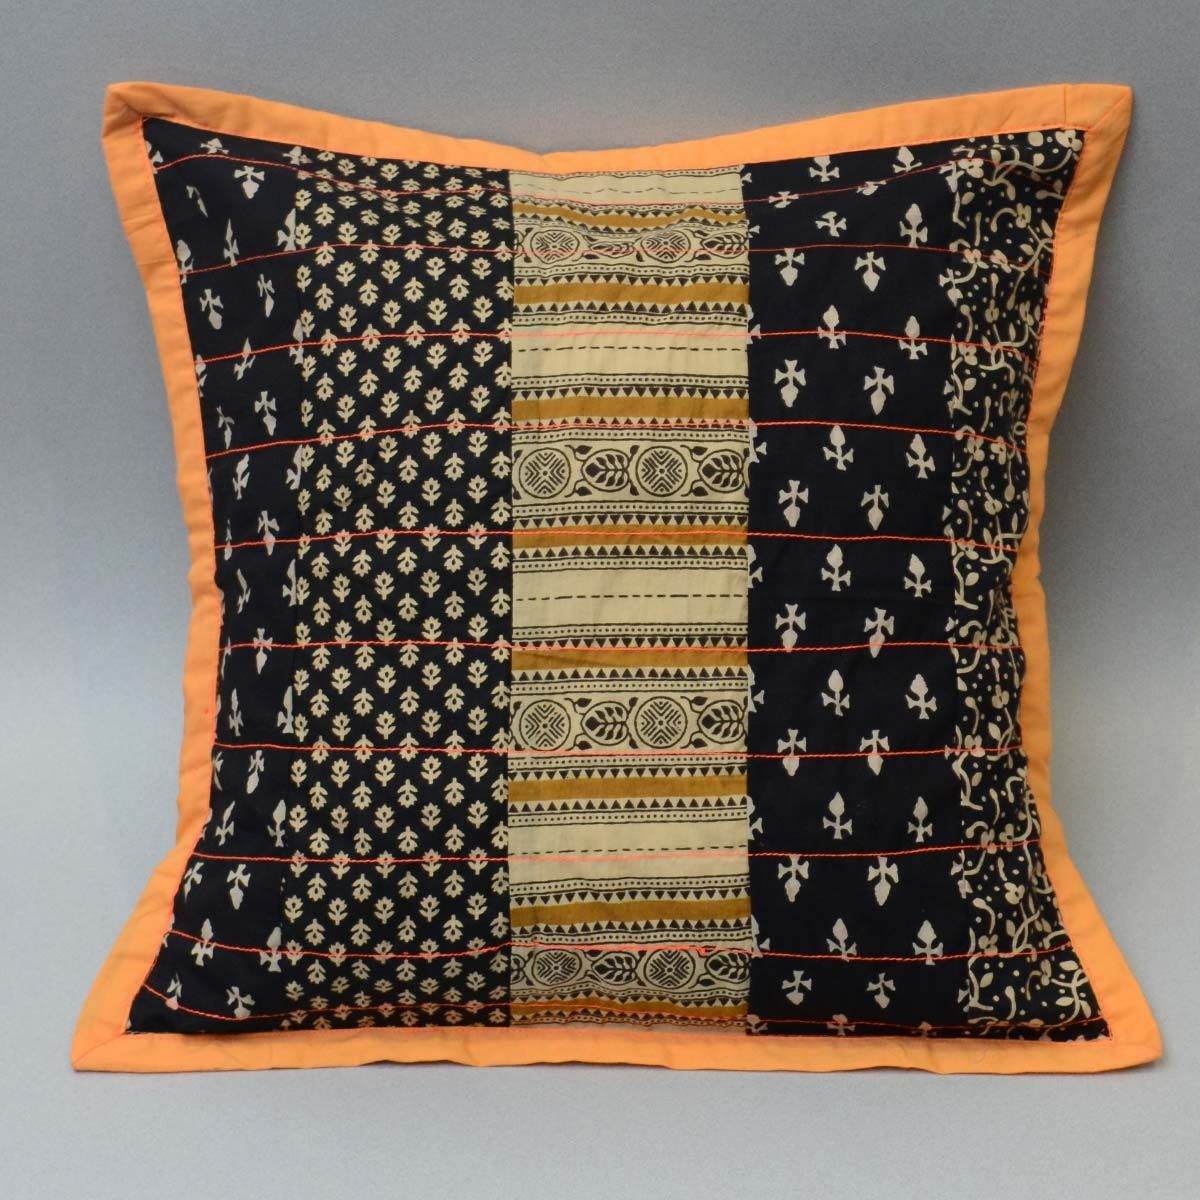 Cotton Patch Work Cushion Cover, Black Color - 16 x 16 Inch